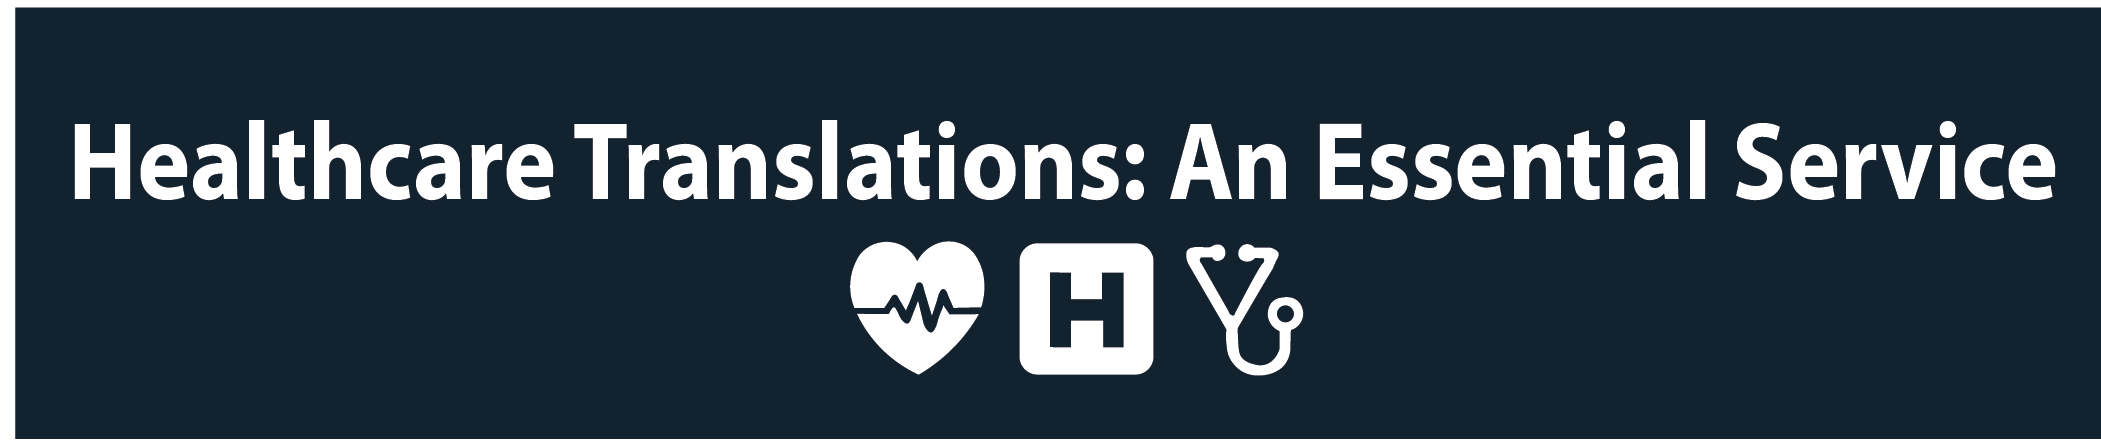 Healthcare Translations: An Essential Service